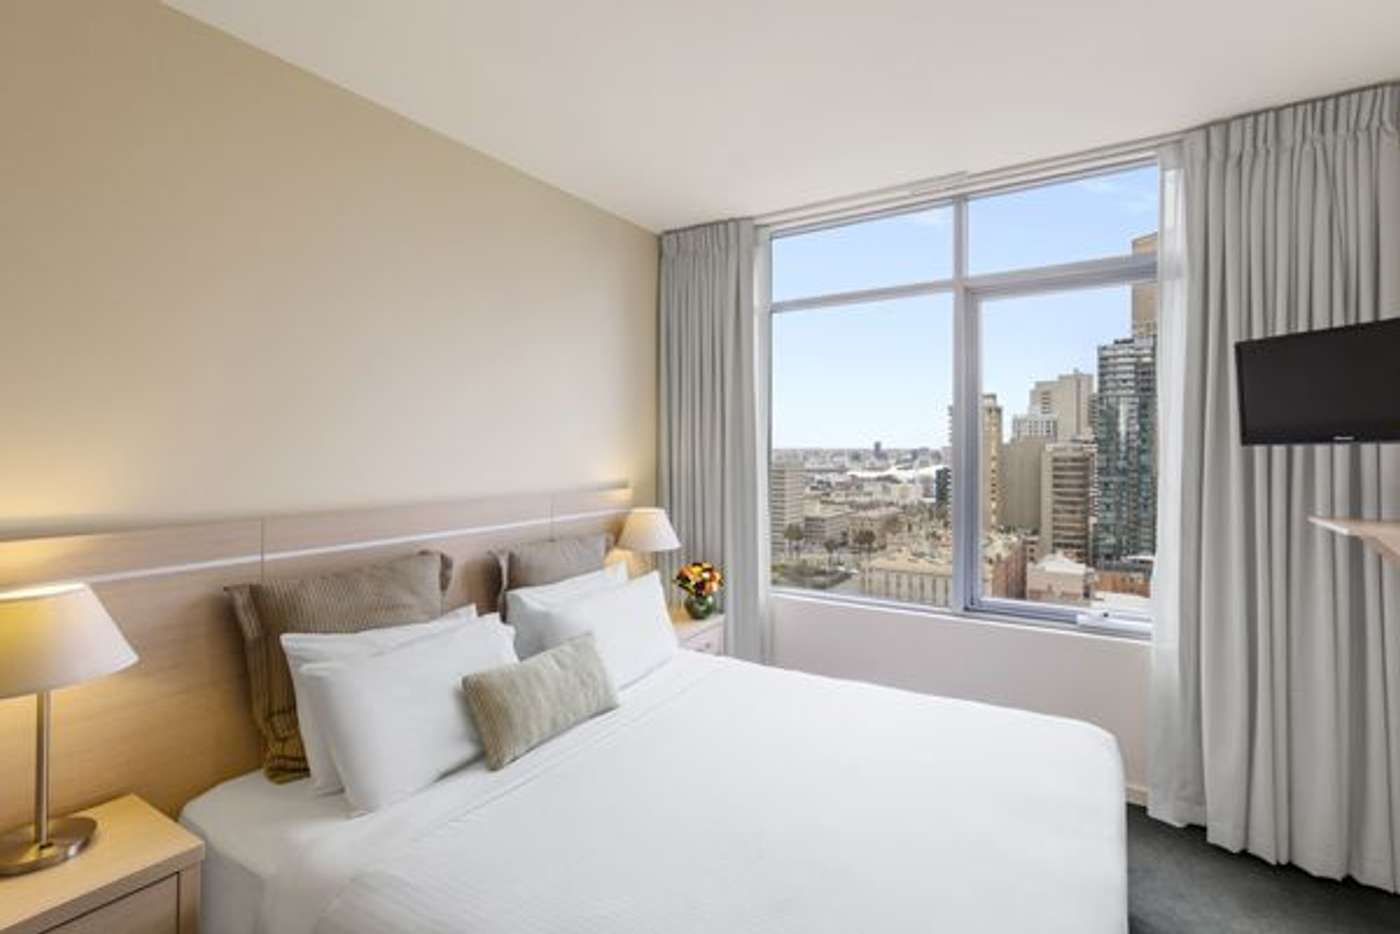 Main view of Homely apartment listing, 2 Bed/23-33 Lonsdale Street, Melbourne VIC 3000